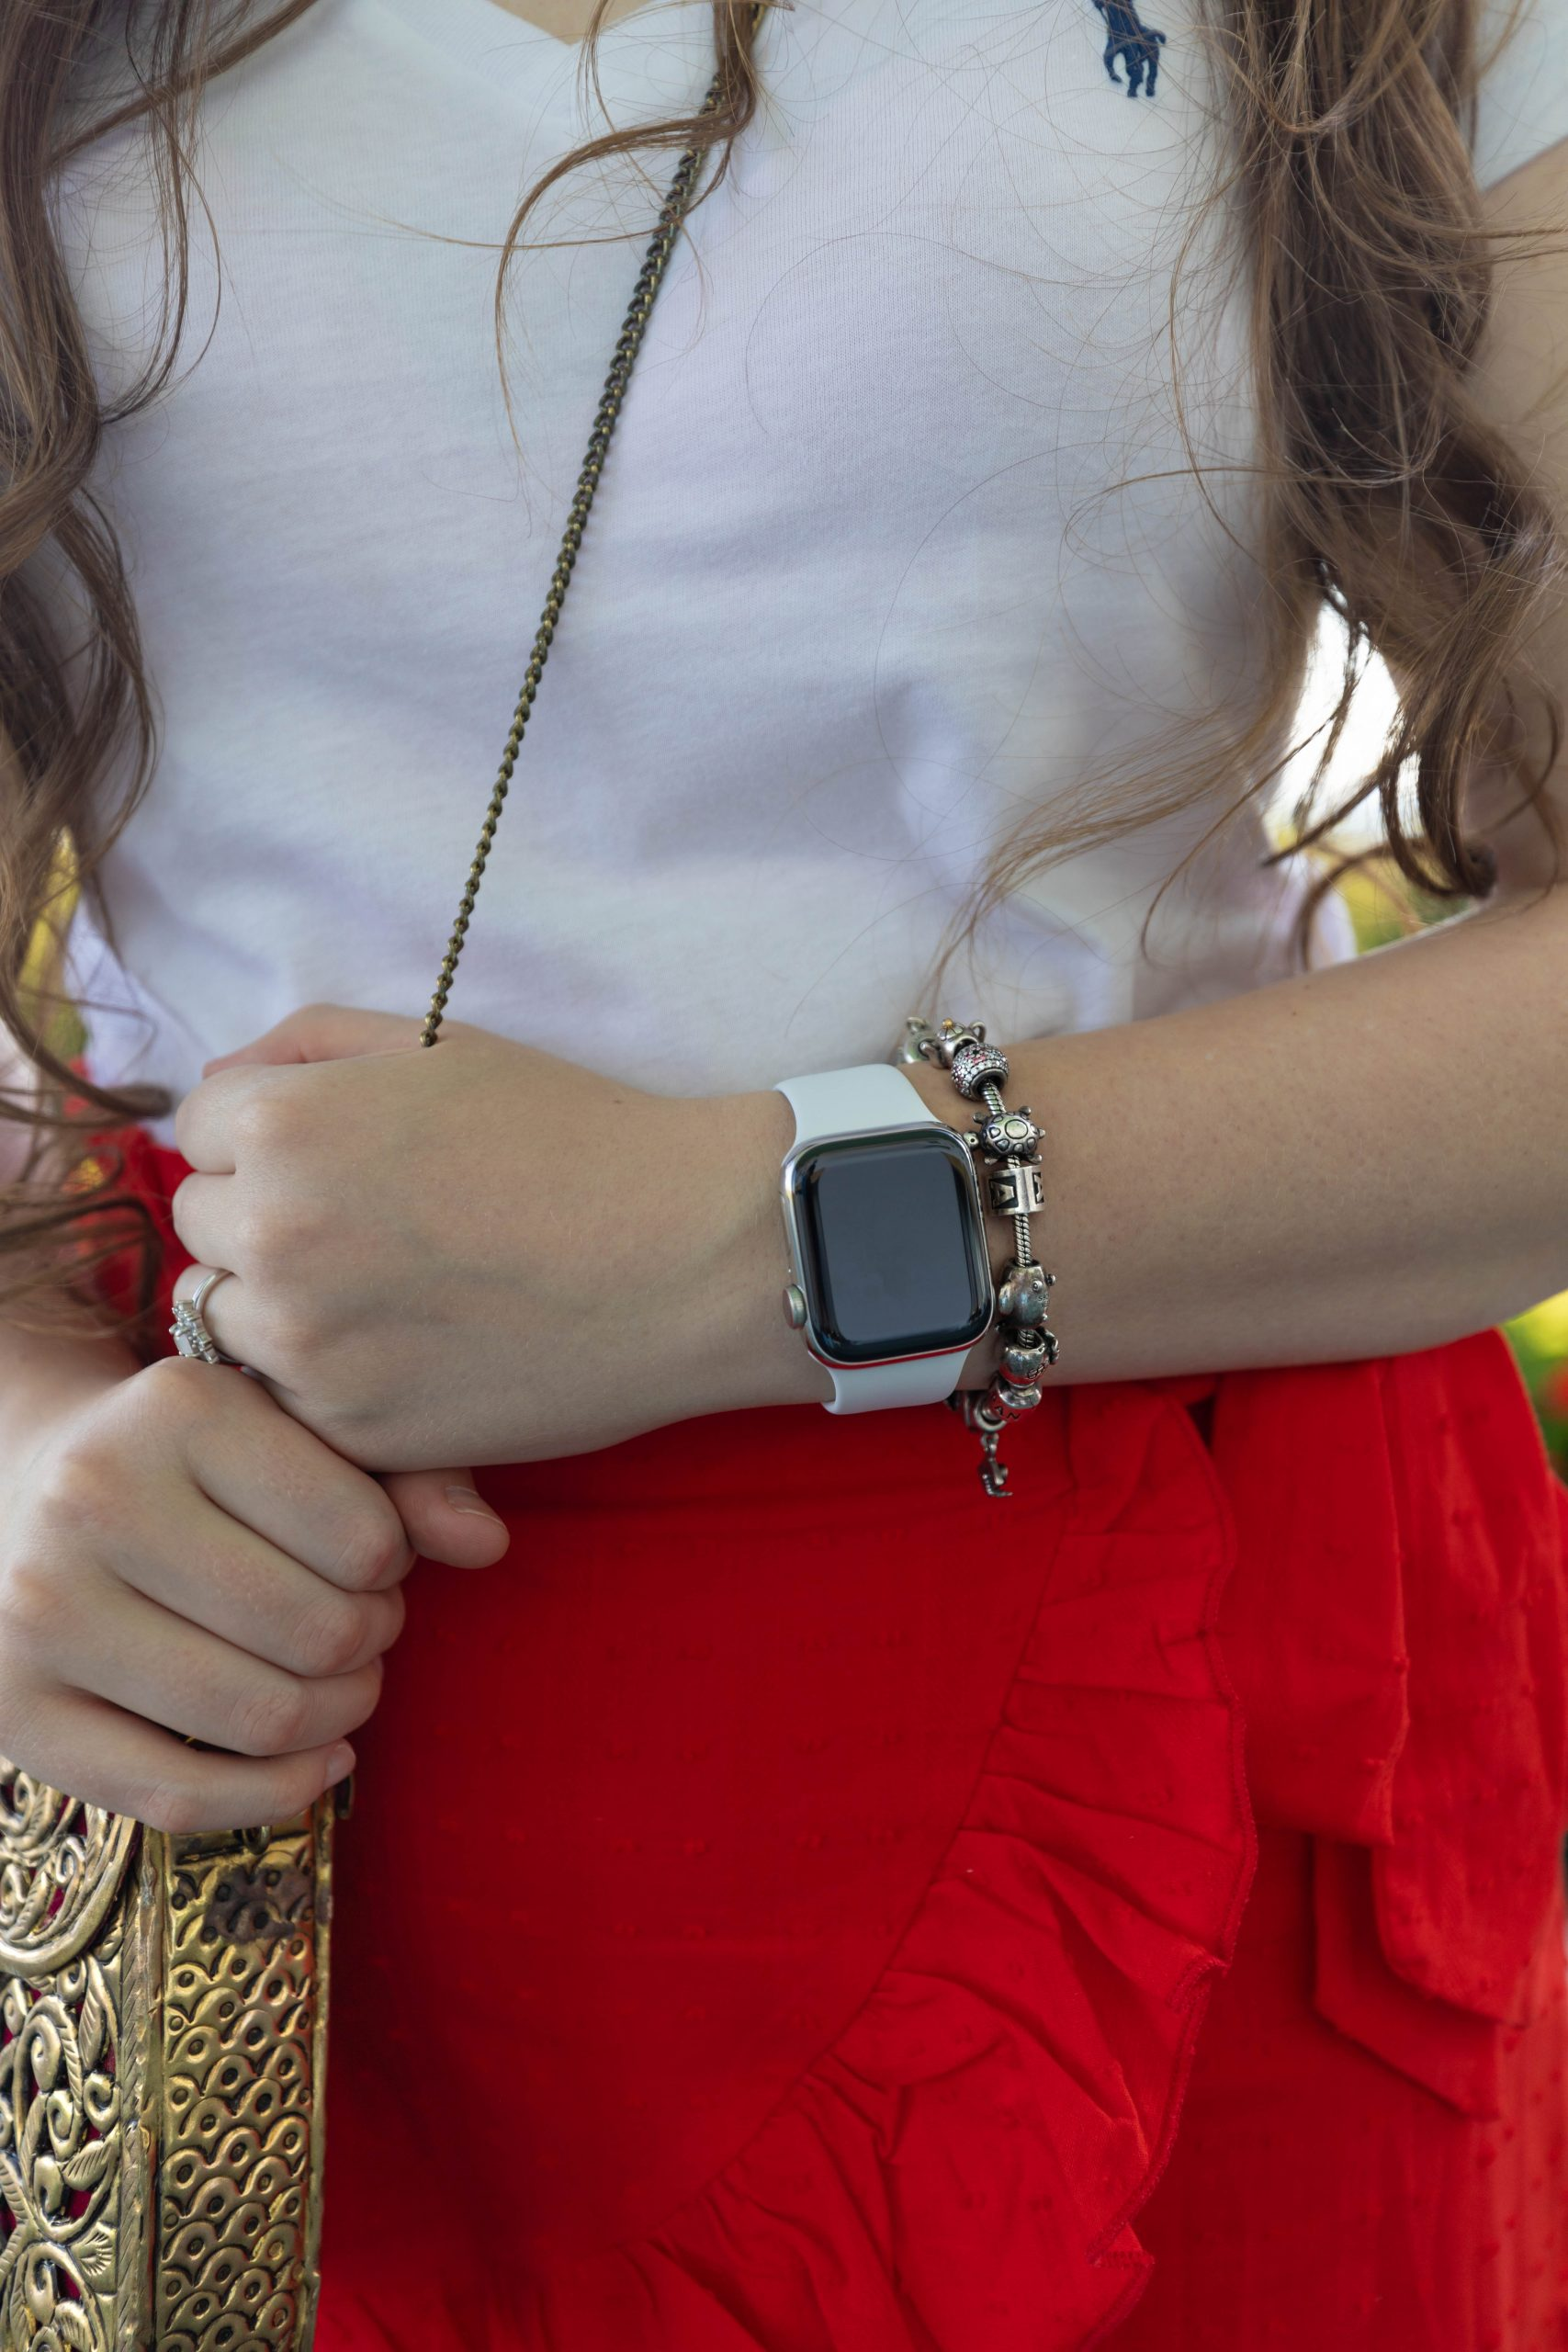 Silicone Apple Watch Bands for only $5 Each in Dozens of Colors Styled by Annie Fairfax